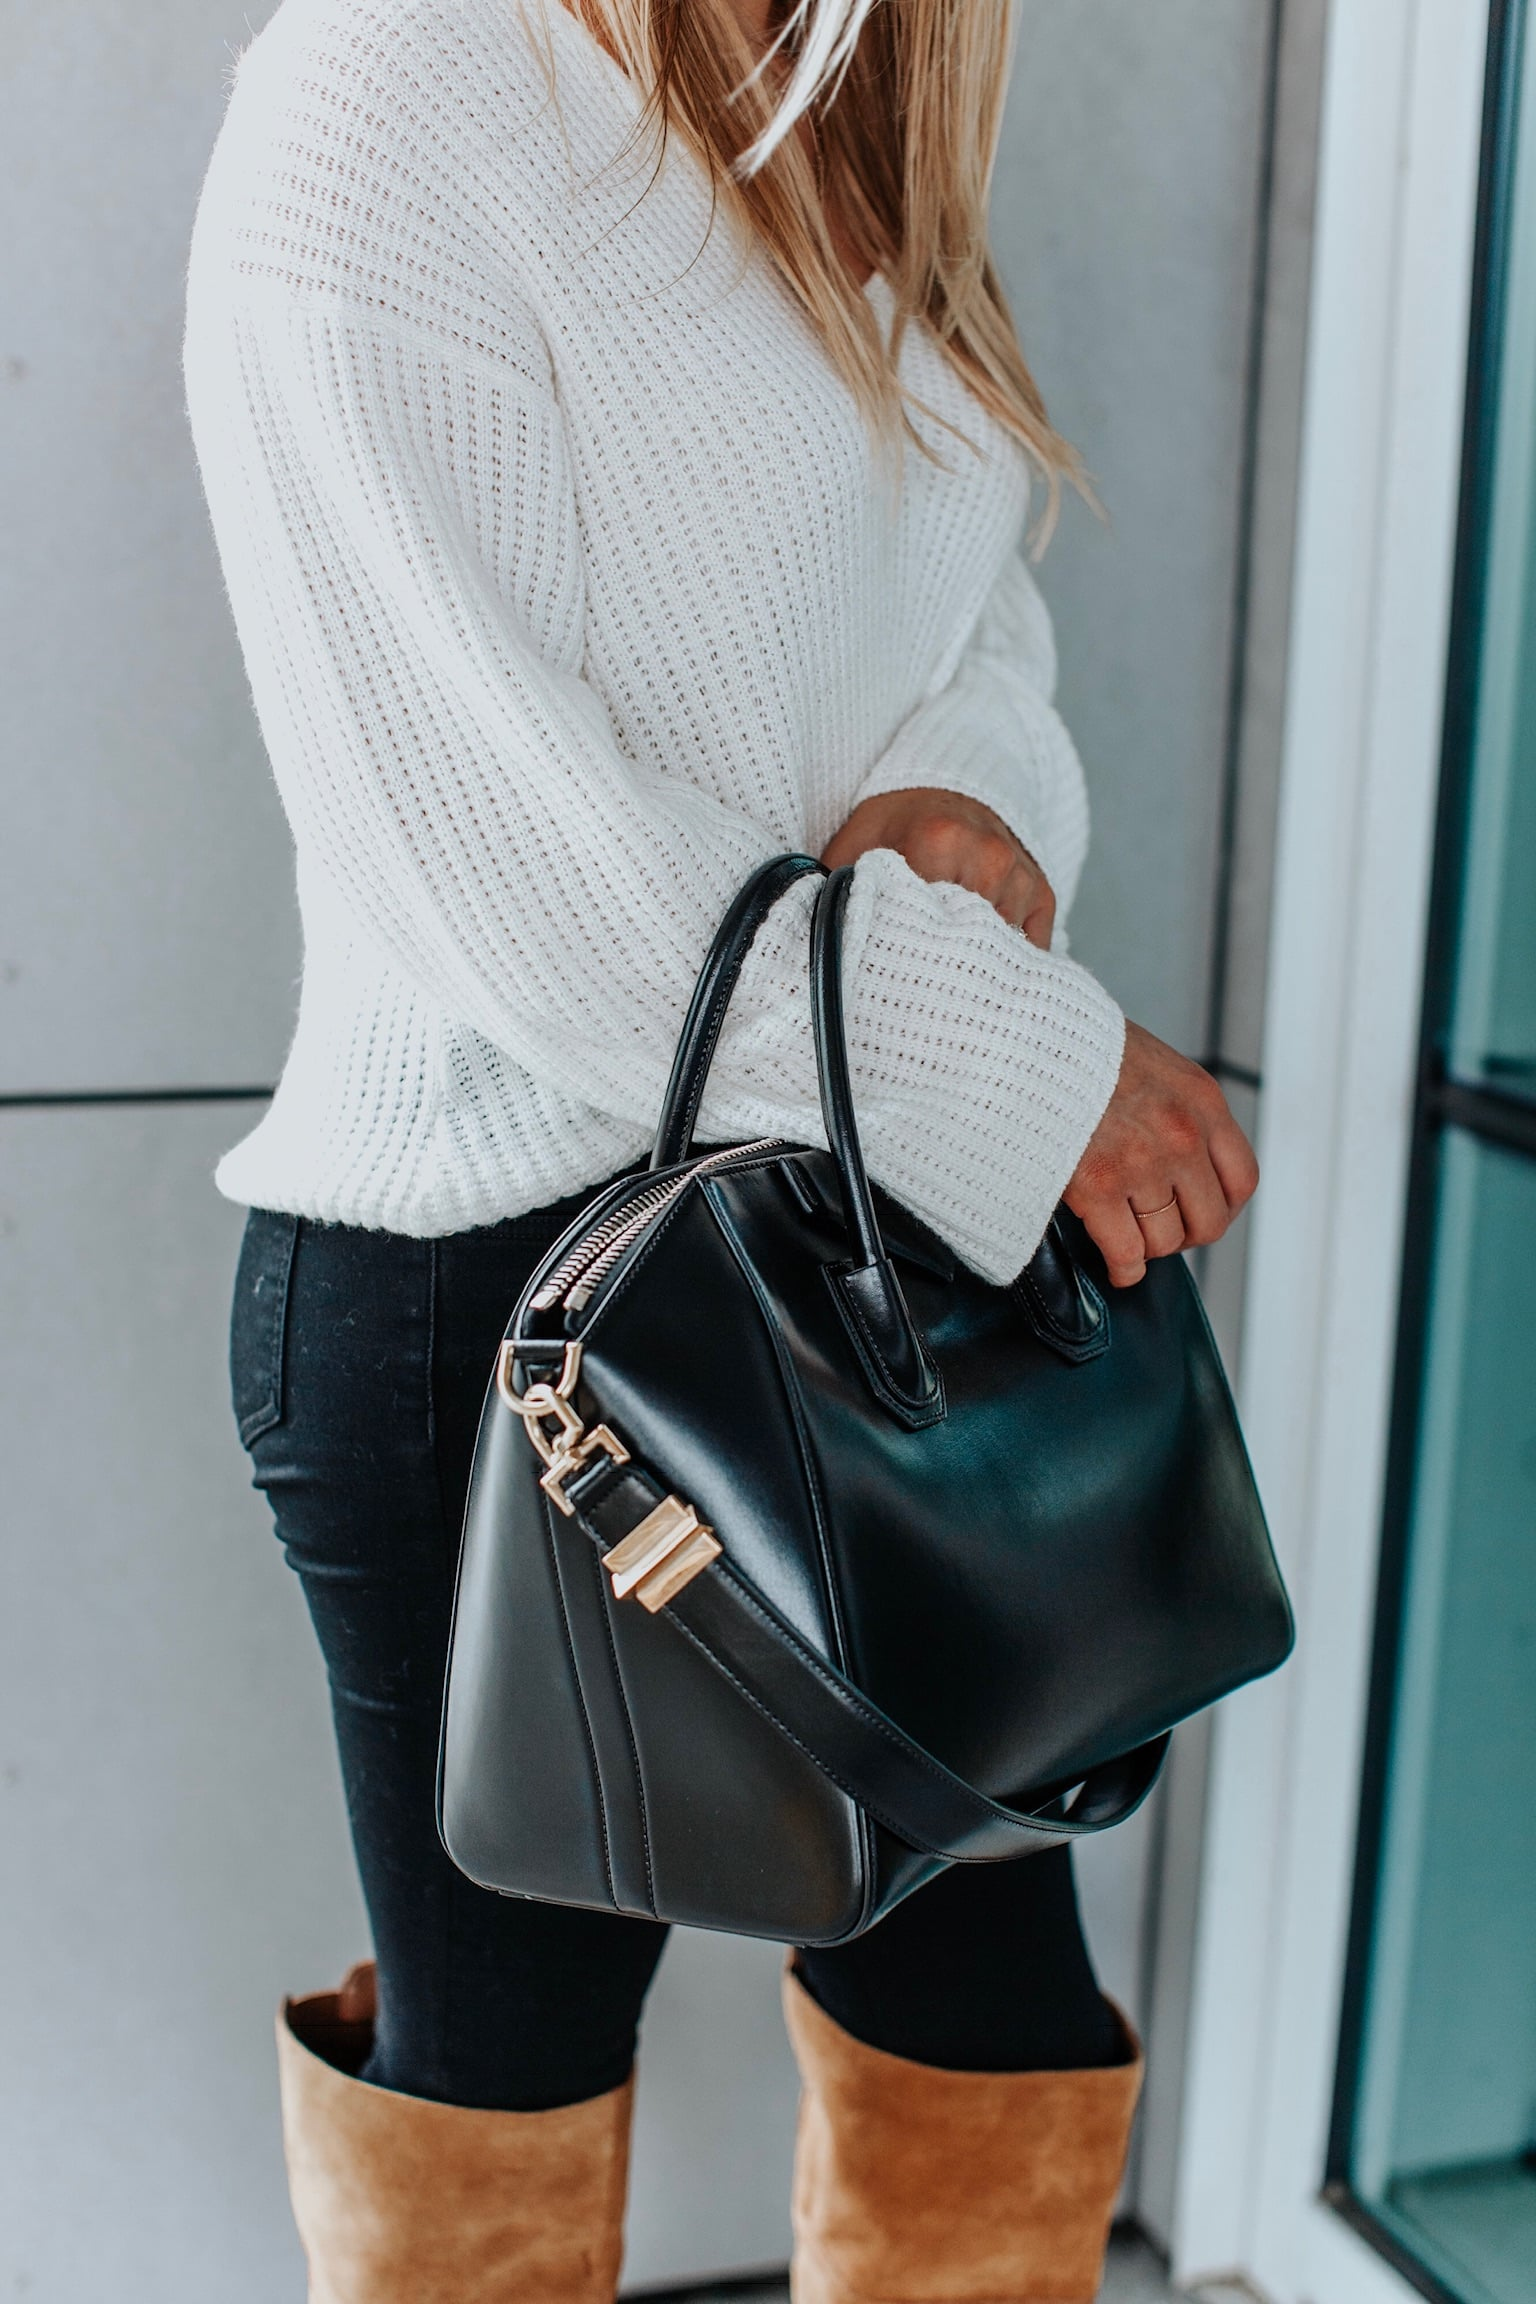 girl wearing white sweater, givenchy bag